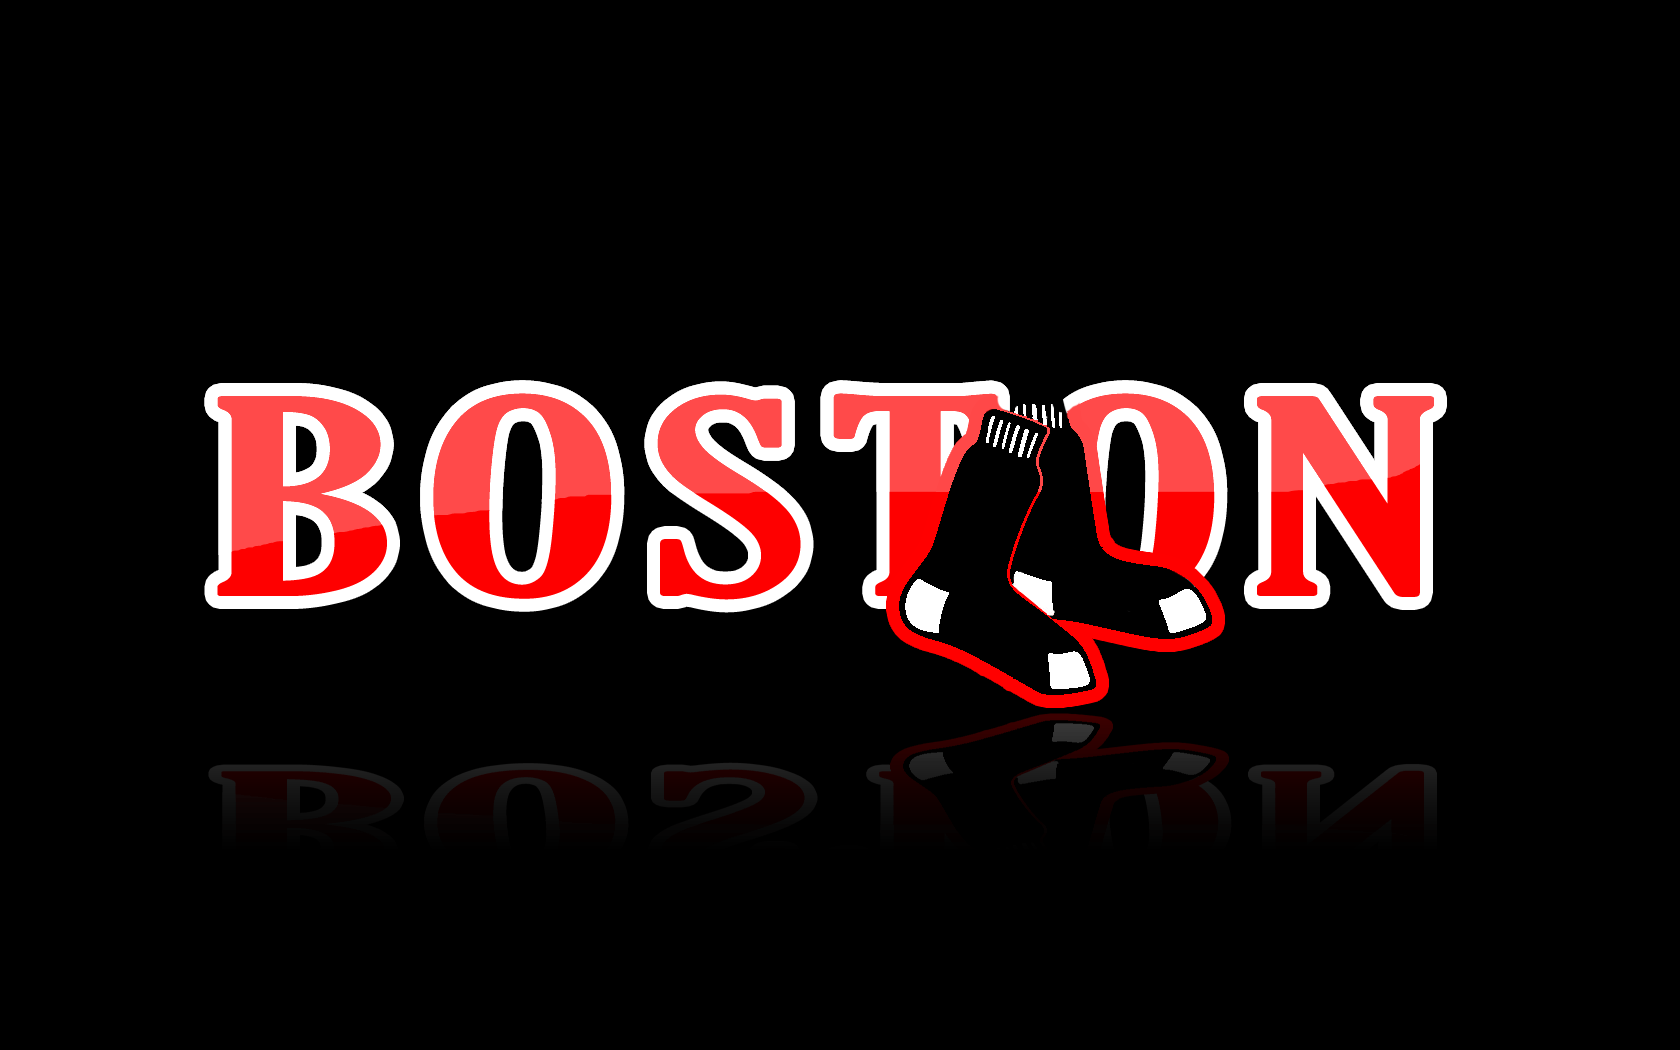 Red sox logo wallpaper free download red sox logo wallpaper voltagebd Image collections